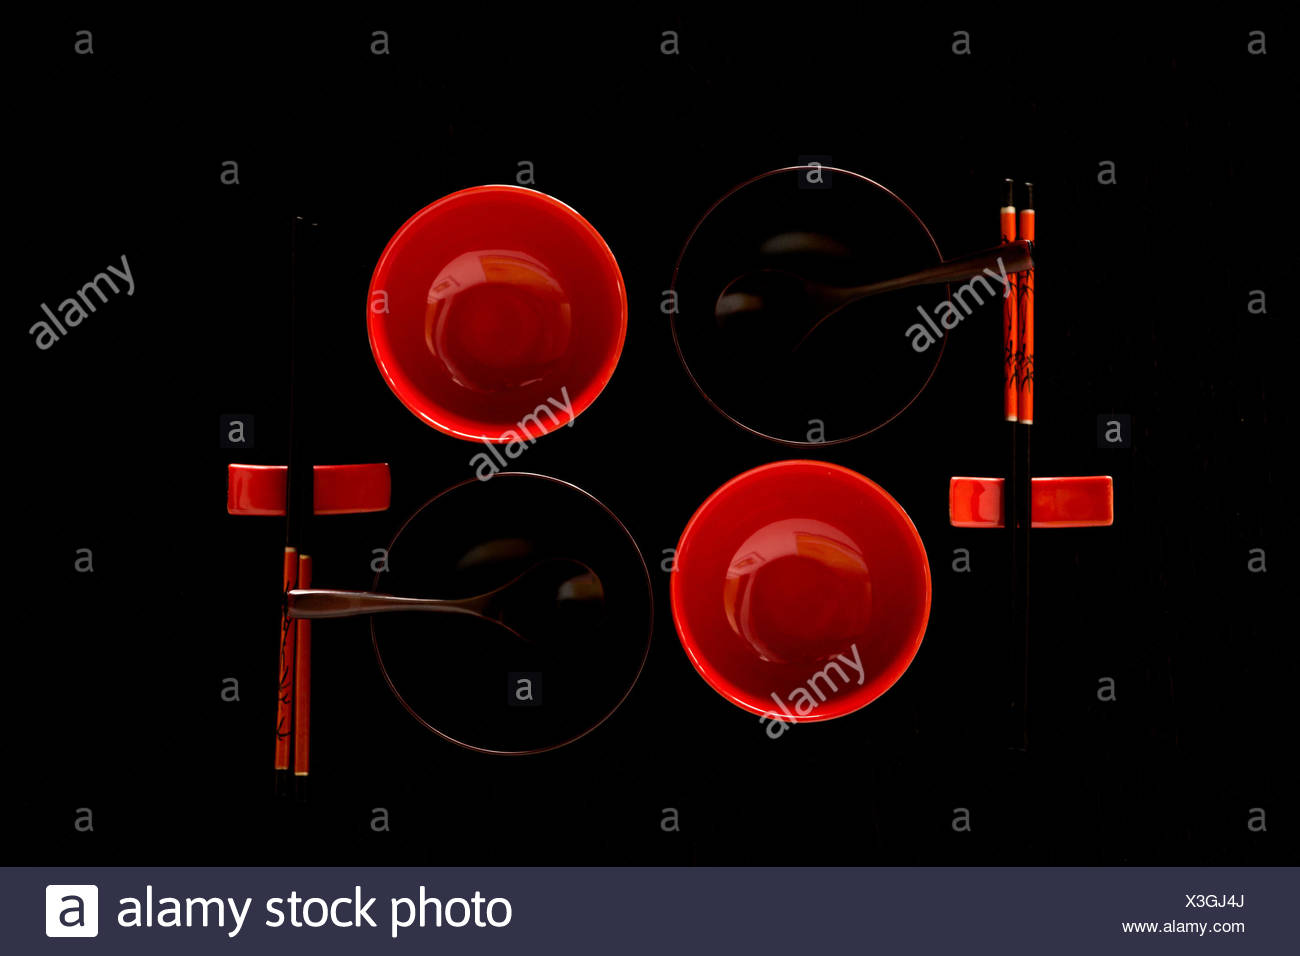 artistic,asian,beautiful,black,black background,black-red,chopsticks,cuisine,culture,cups,cut-out,dark,decoration,dining,Dunkel,east,empty,enjoyment,ethnic,for two,Genuss,gloom,Ilex,kitchen,light,lines,object,objects,orient,oriental,plate,pleasure,red,red - Stock Image